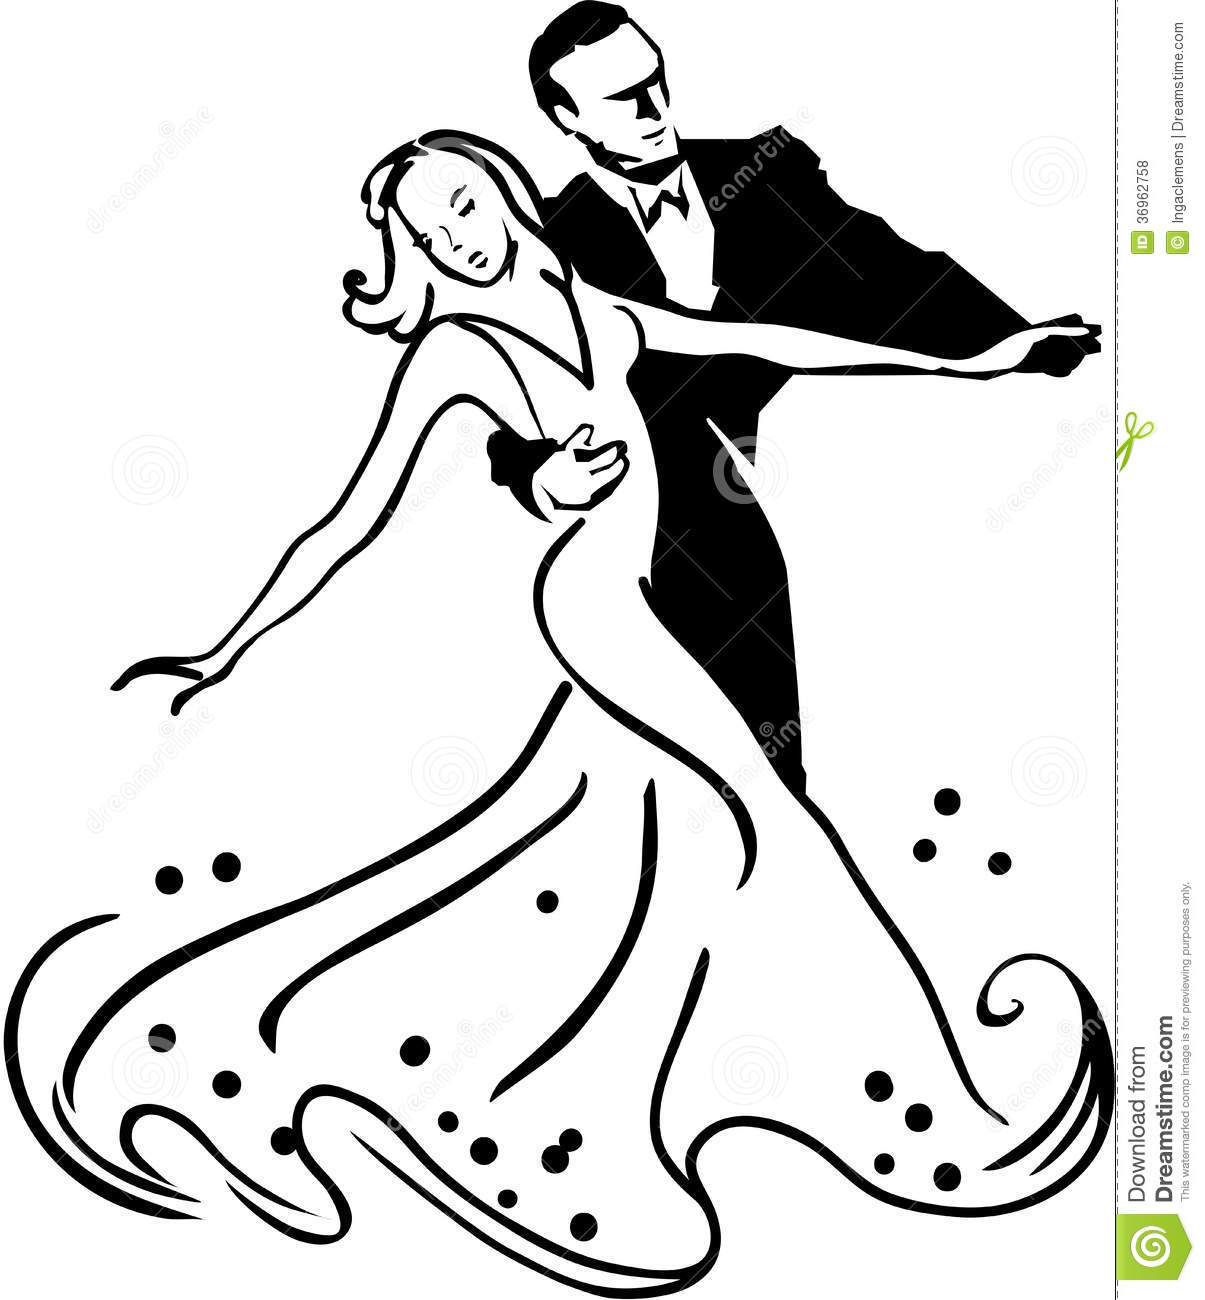 Sketch Male Ballet Dancer Standing In Pose Image 5724494 moreover Disegni Di Ballerine Da St are E Colorare 18981 16 together with Melody Music Clipart 14651 additionally Possum Colouring Pages as well Royalty Free Stock Photos Ballroom Dance Dancers Black White Clipart Image36962758. on ballet dancer clip art black and white